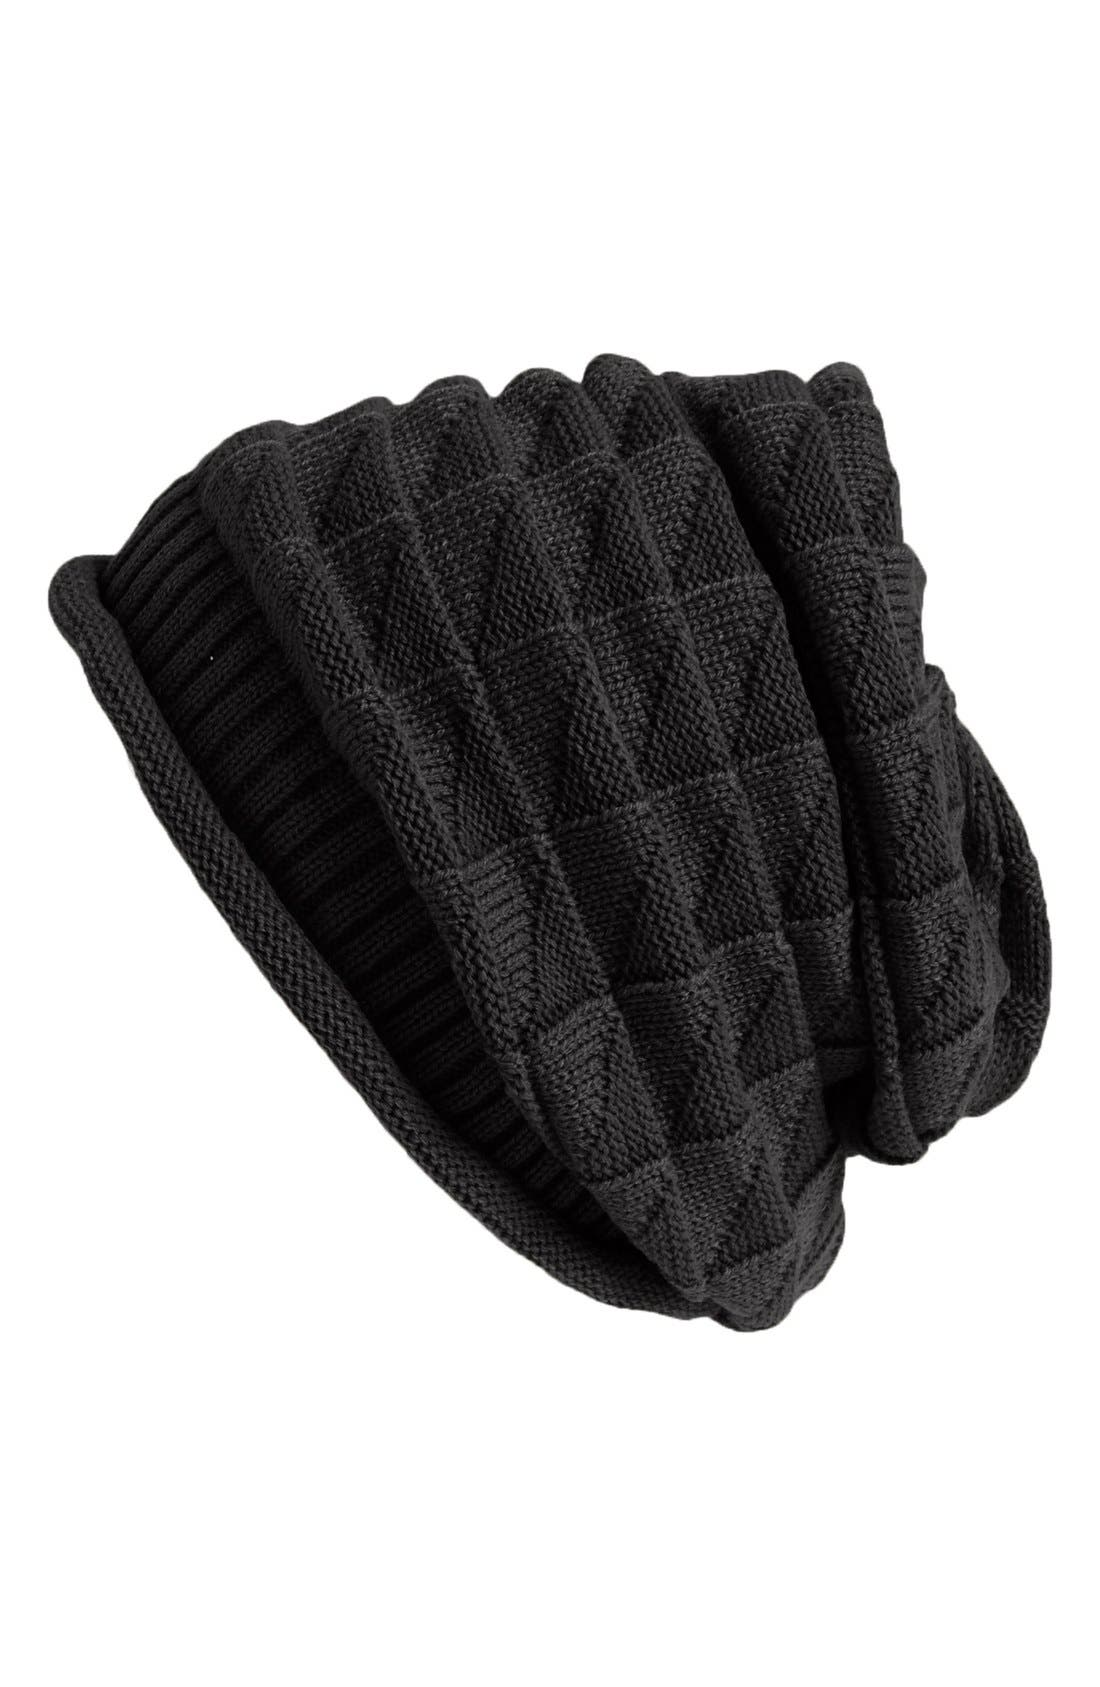 Main Image - Amici Accessories Square Knit Beanie (Juniors) (Online Only)